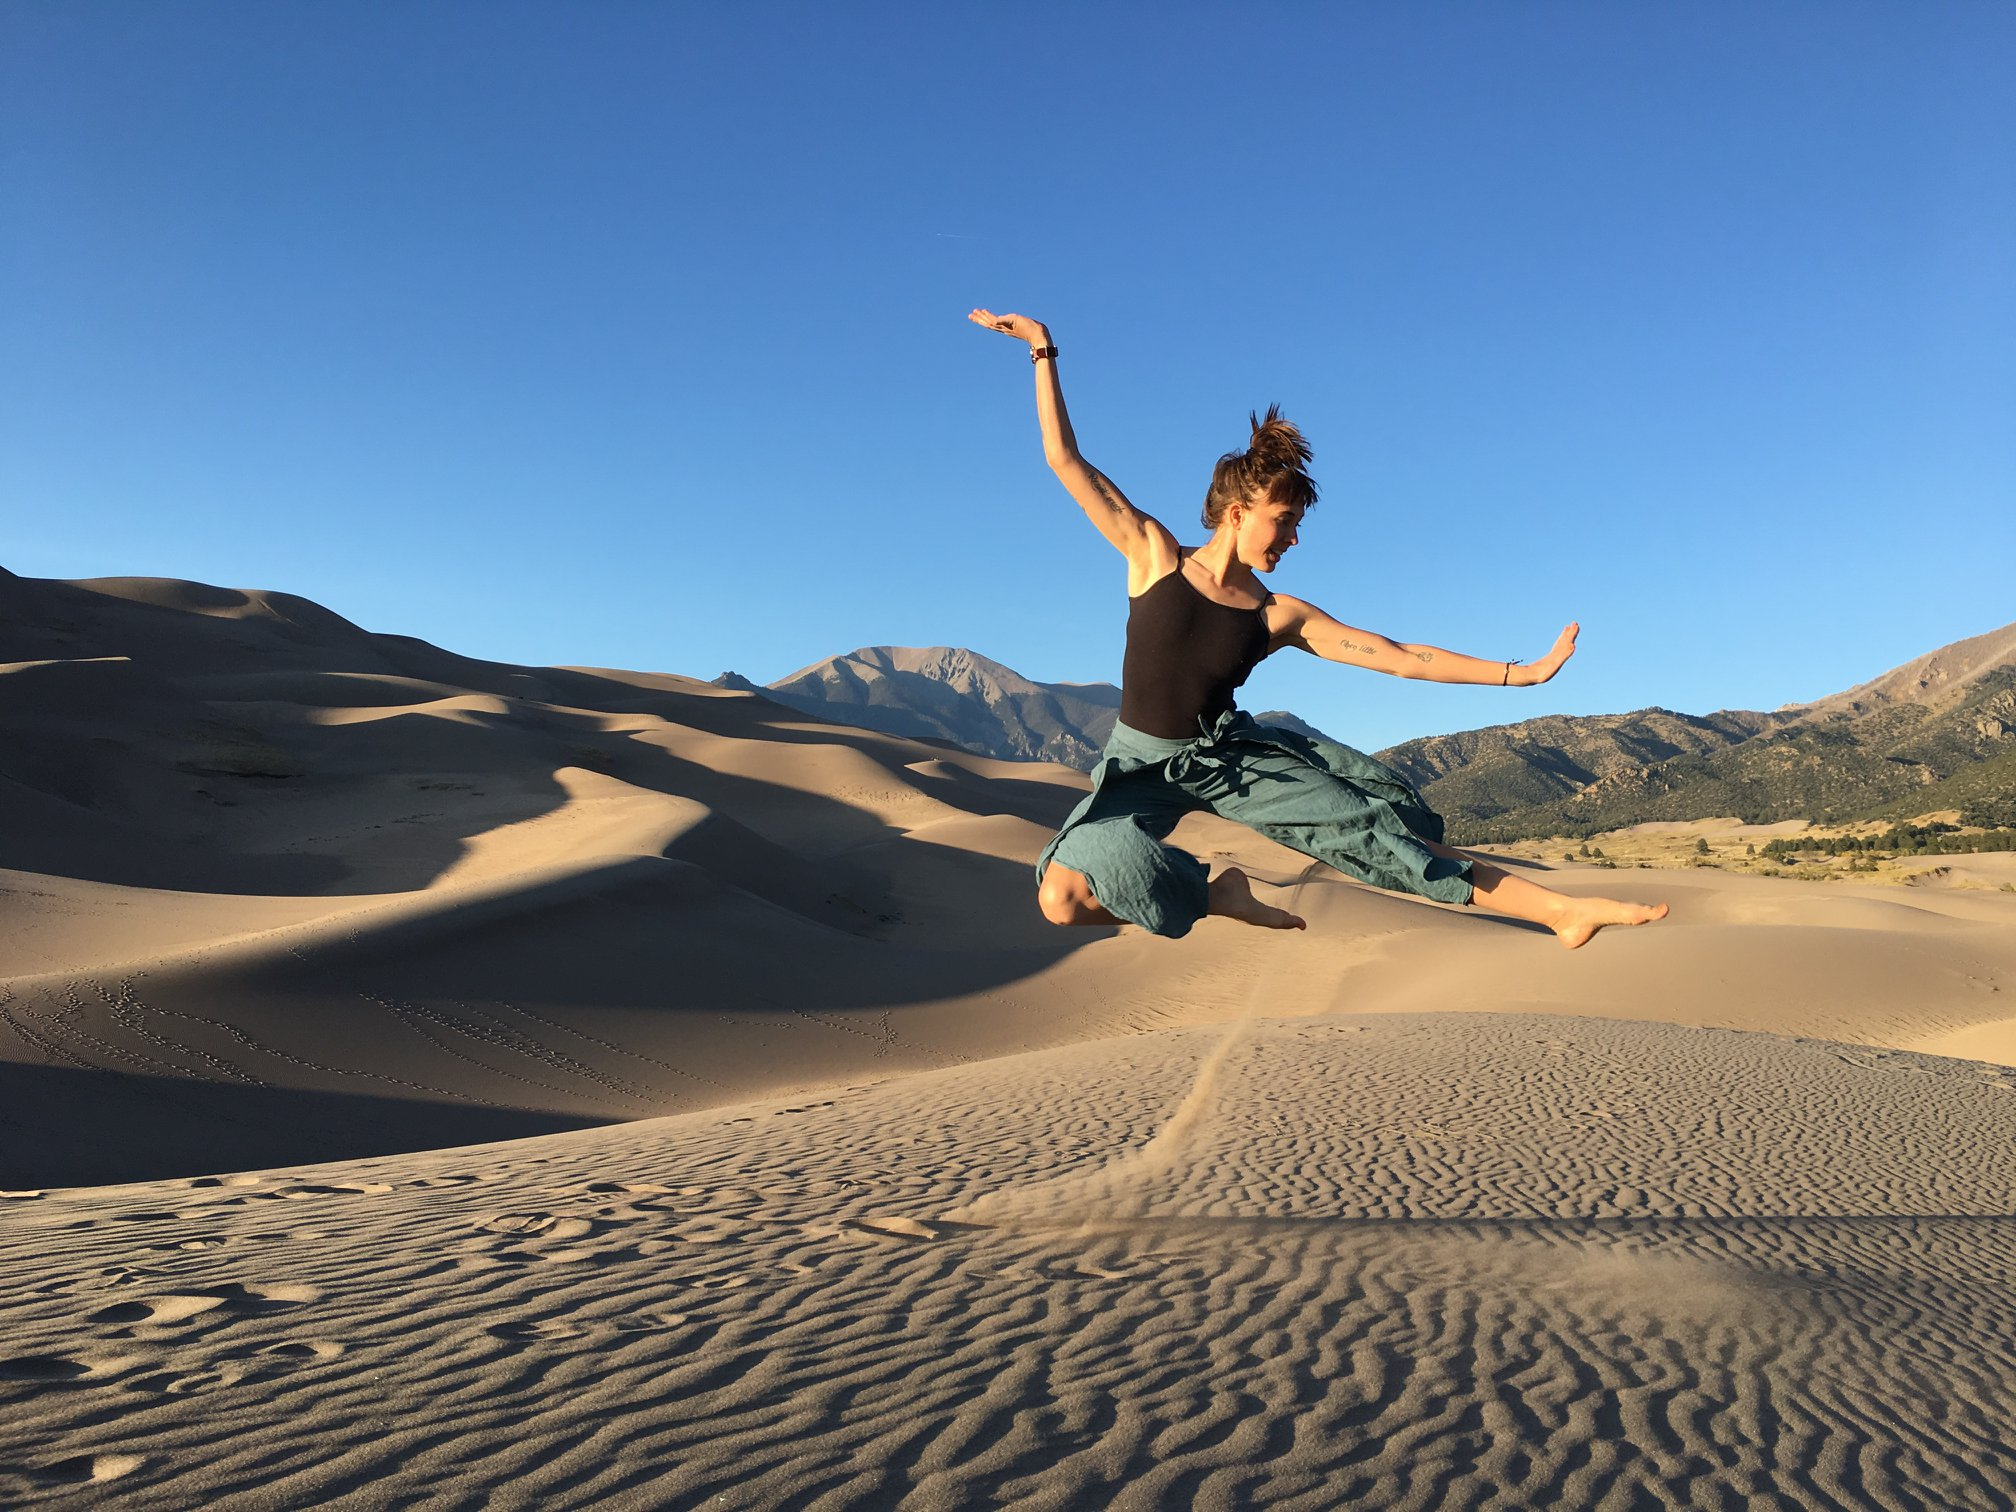 Erica Prather performing at the Great Sand Dunes National Park during her 2019 artist residency.